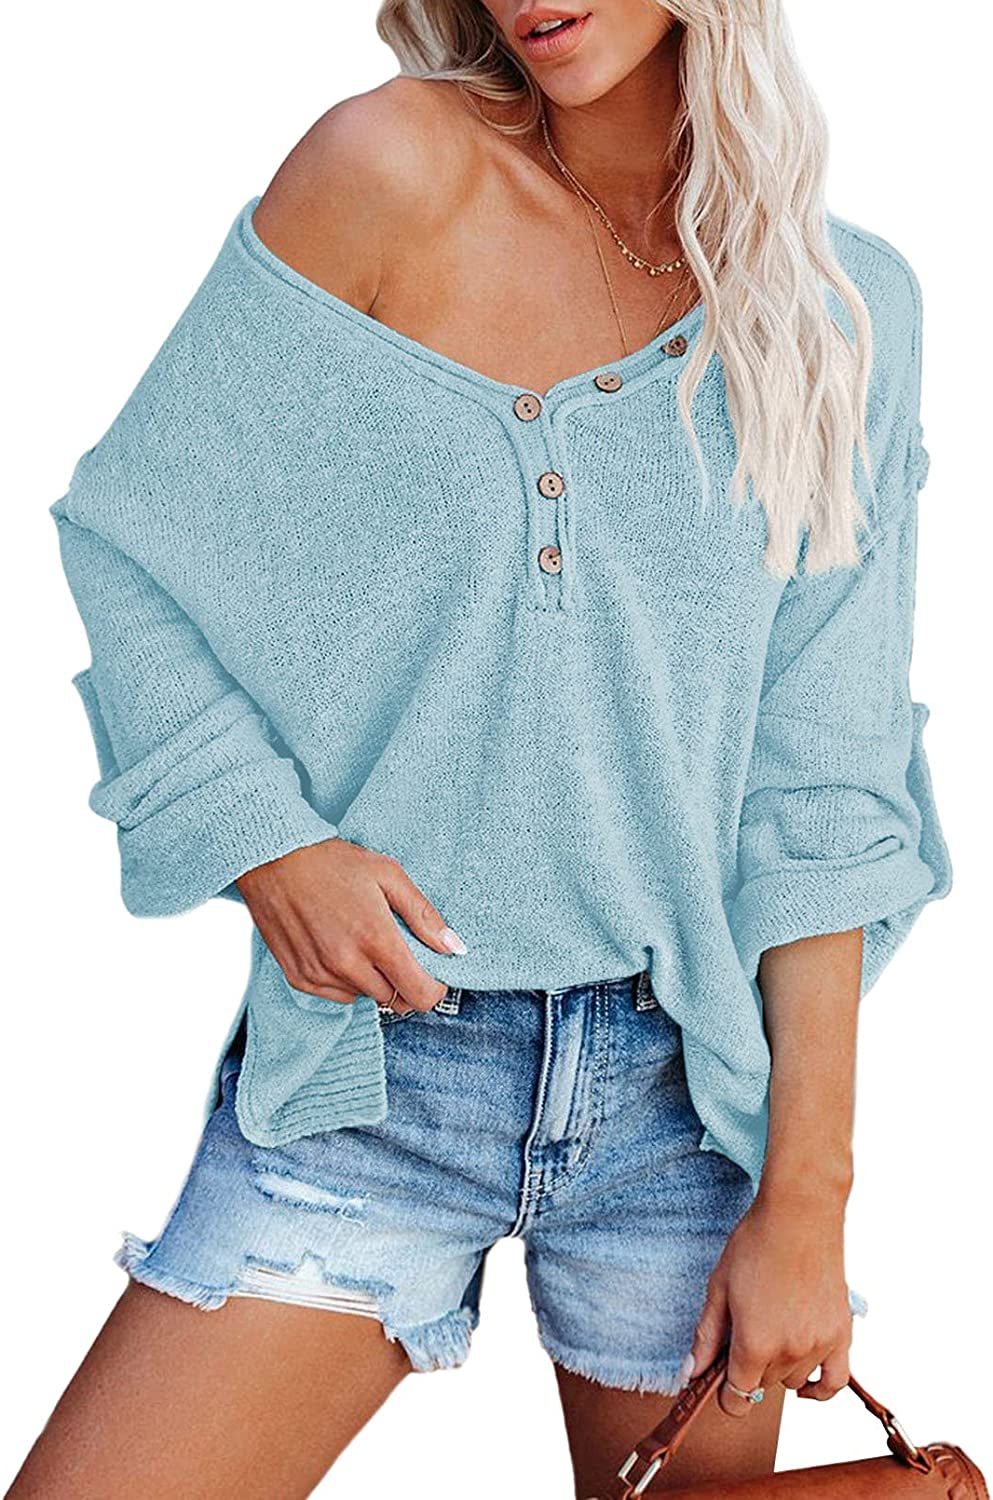 Pink Queen Women's V Neck Knit Sweater Oversized Button Long Sleeve Pullover Tops